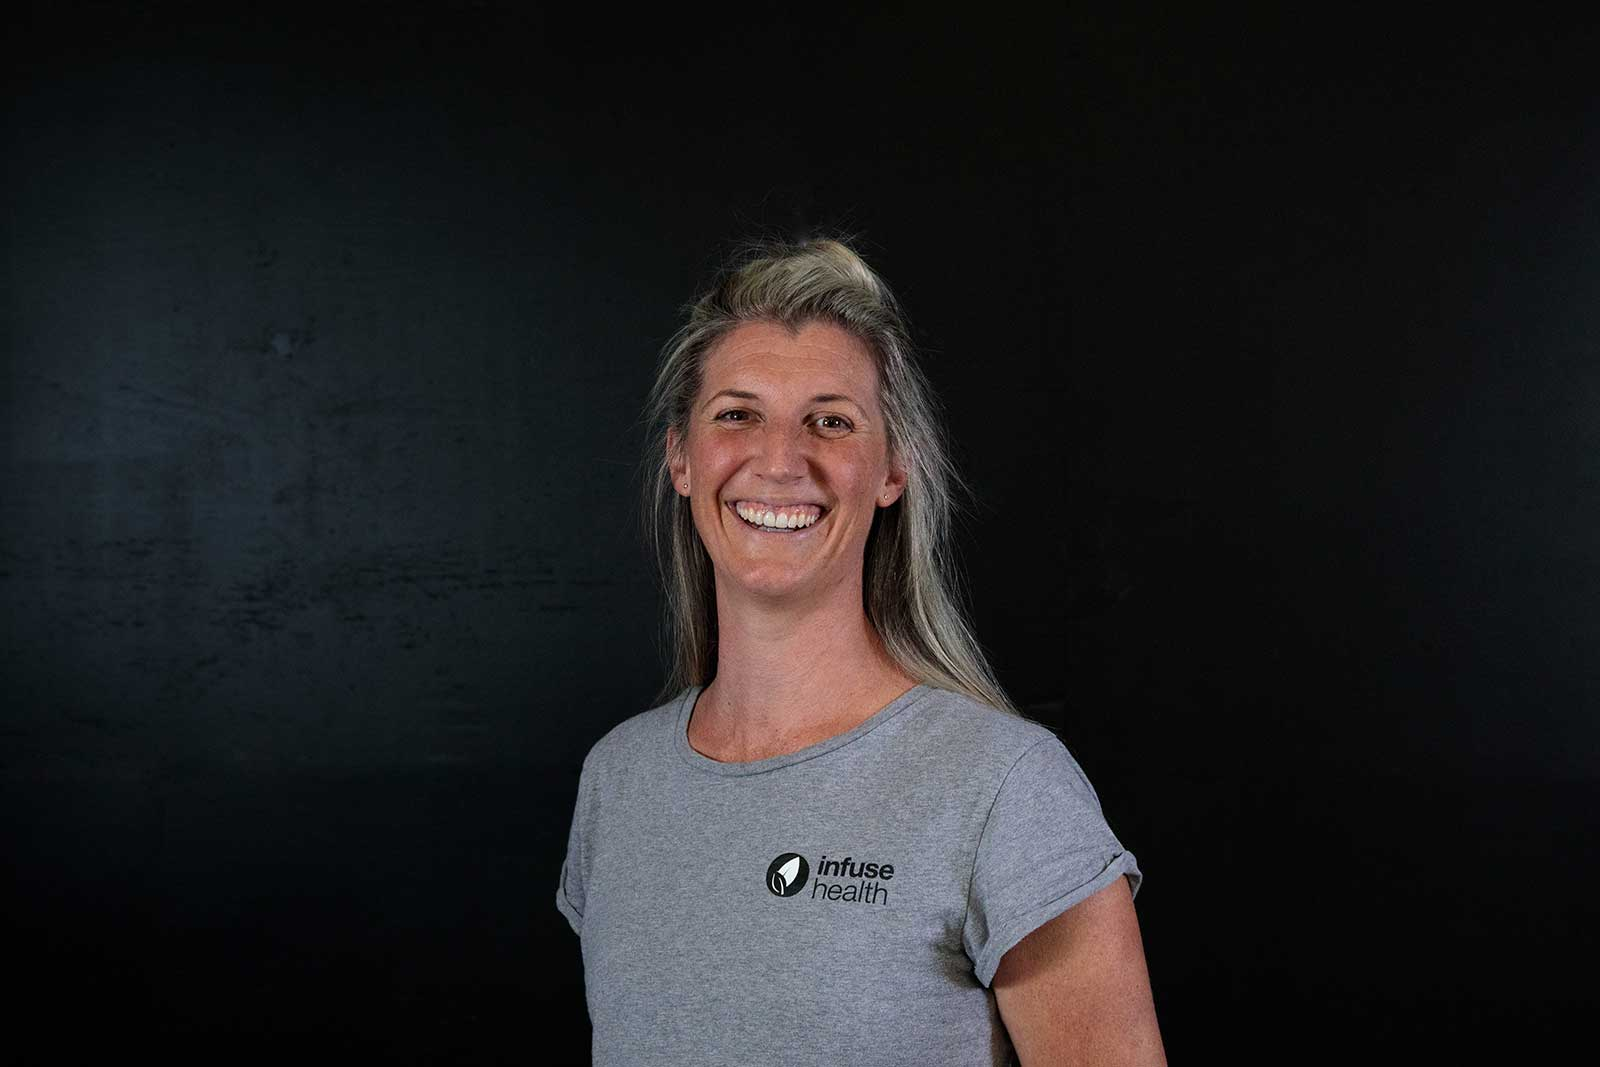 a lady smiles right back at the camera. She wears a grey t-shirt with an infuse health logo on it, she is stood against a black wall